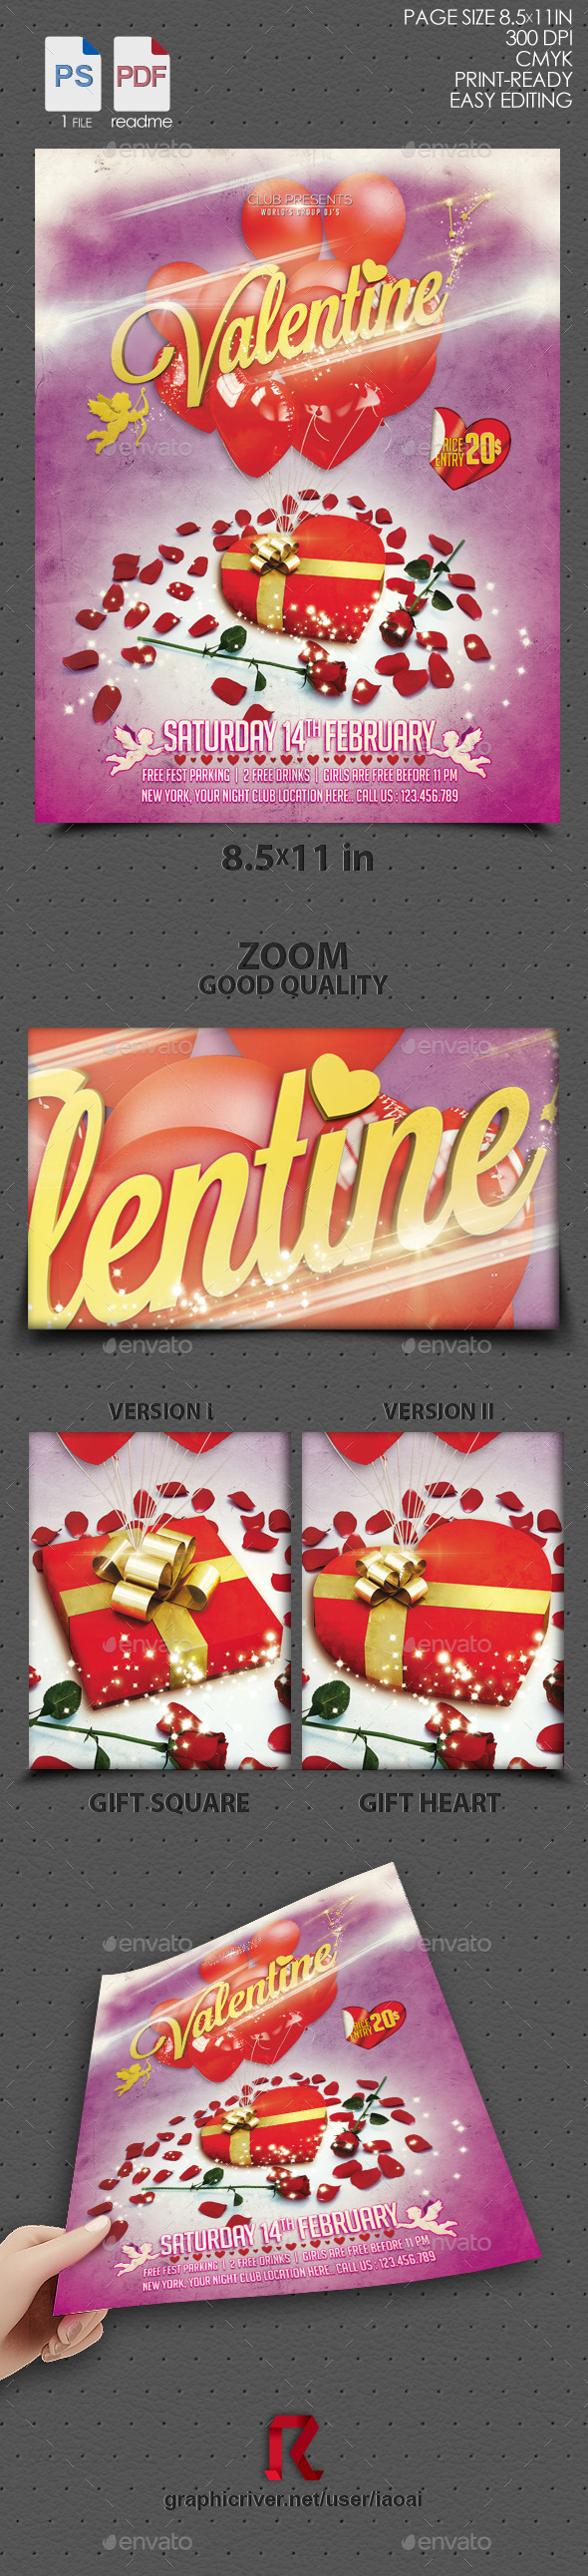 GraphicRiver Valentine flyer 10051367